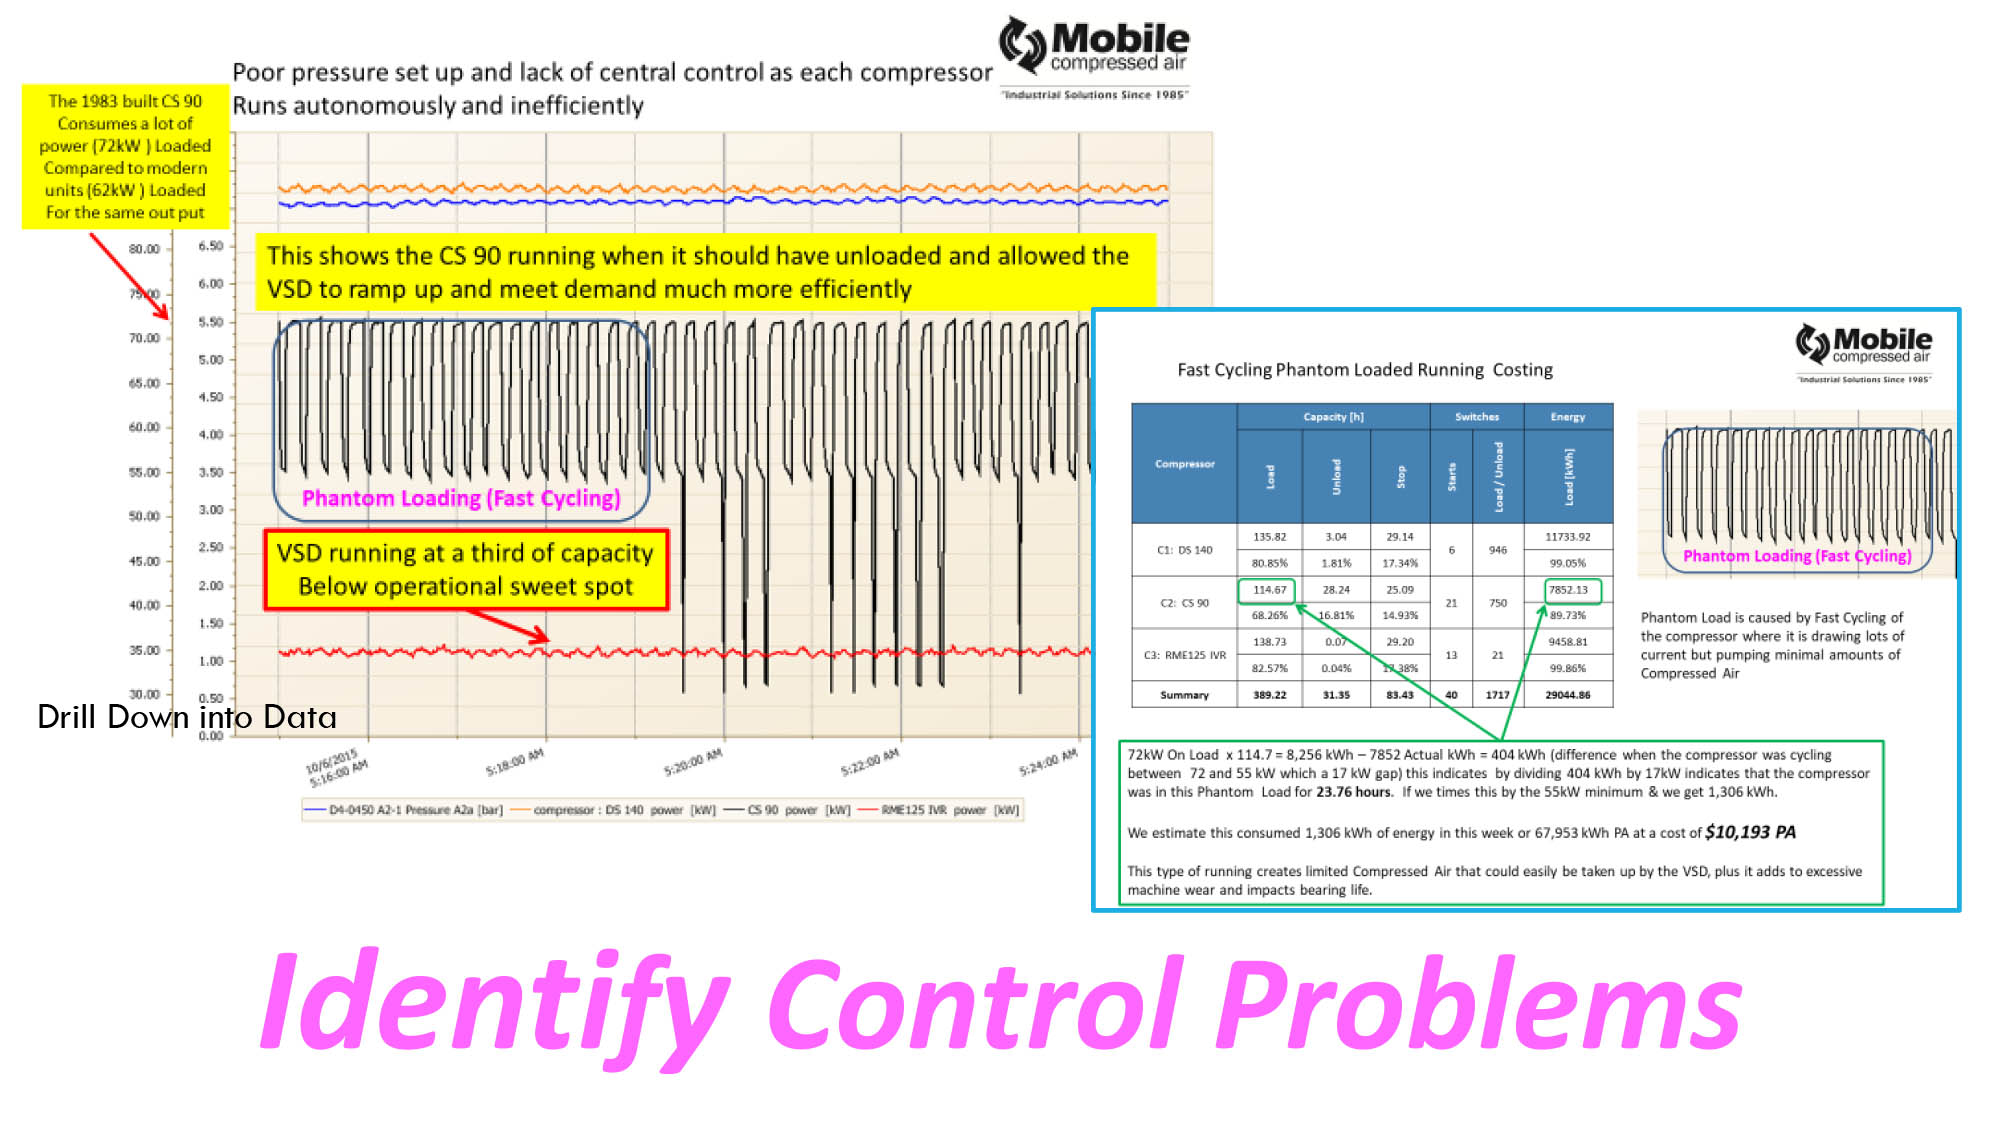 Indentify Control Problems